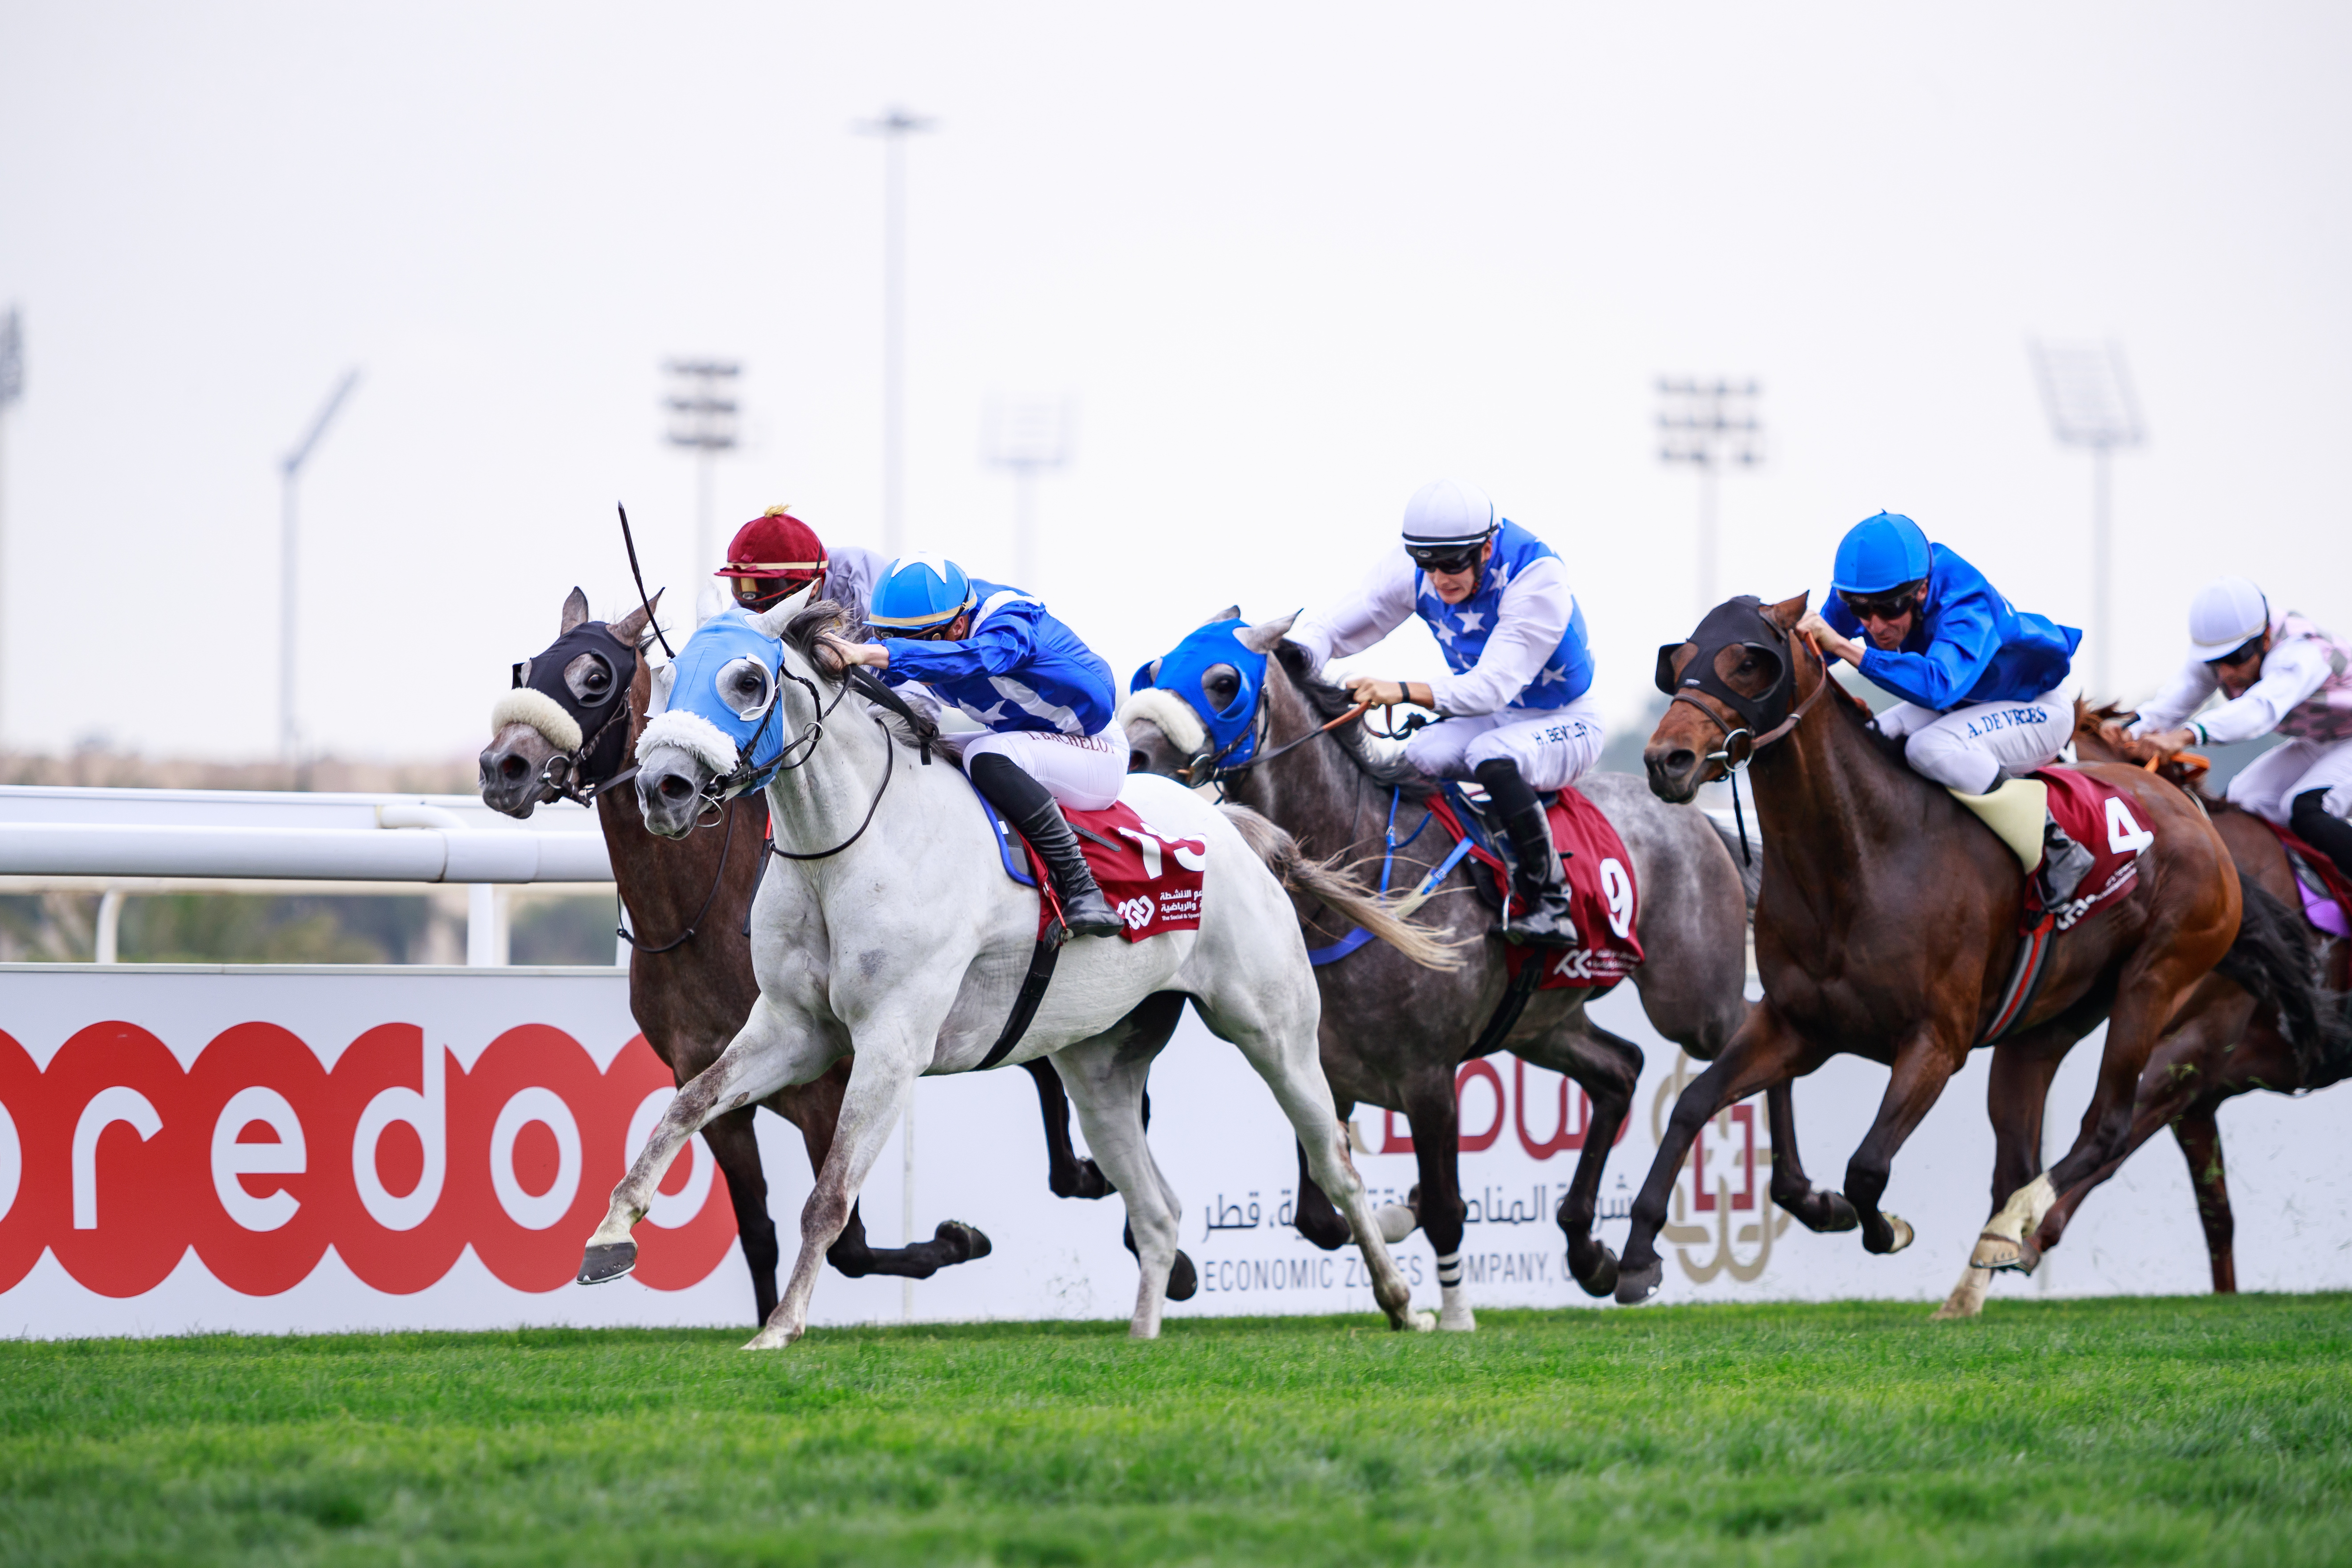 QATAR INTERNATIONAL CUP - Sharesa enjoys her first Gr1 win as European project again figures on the agenda